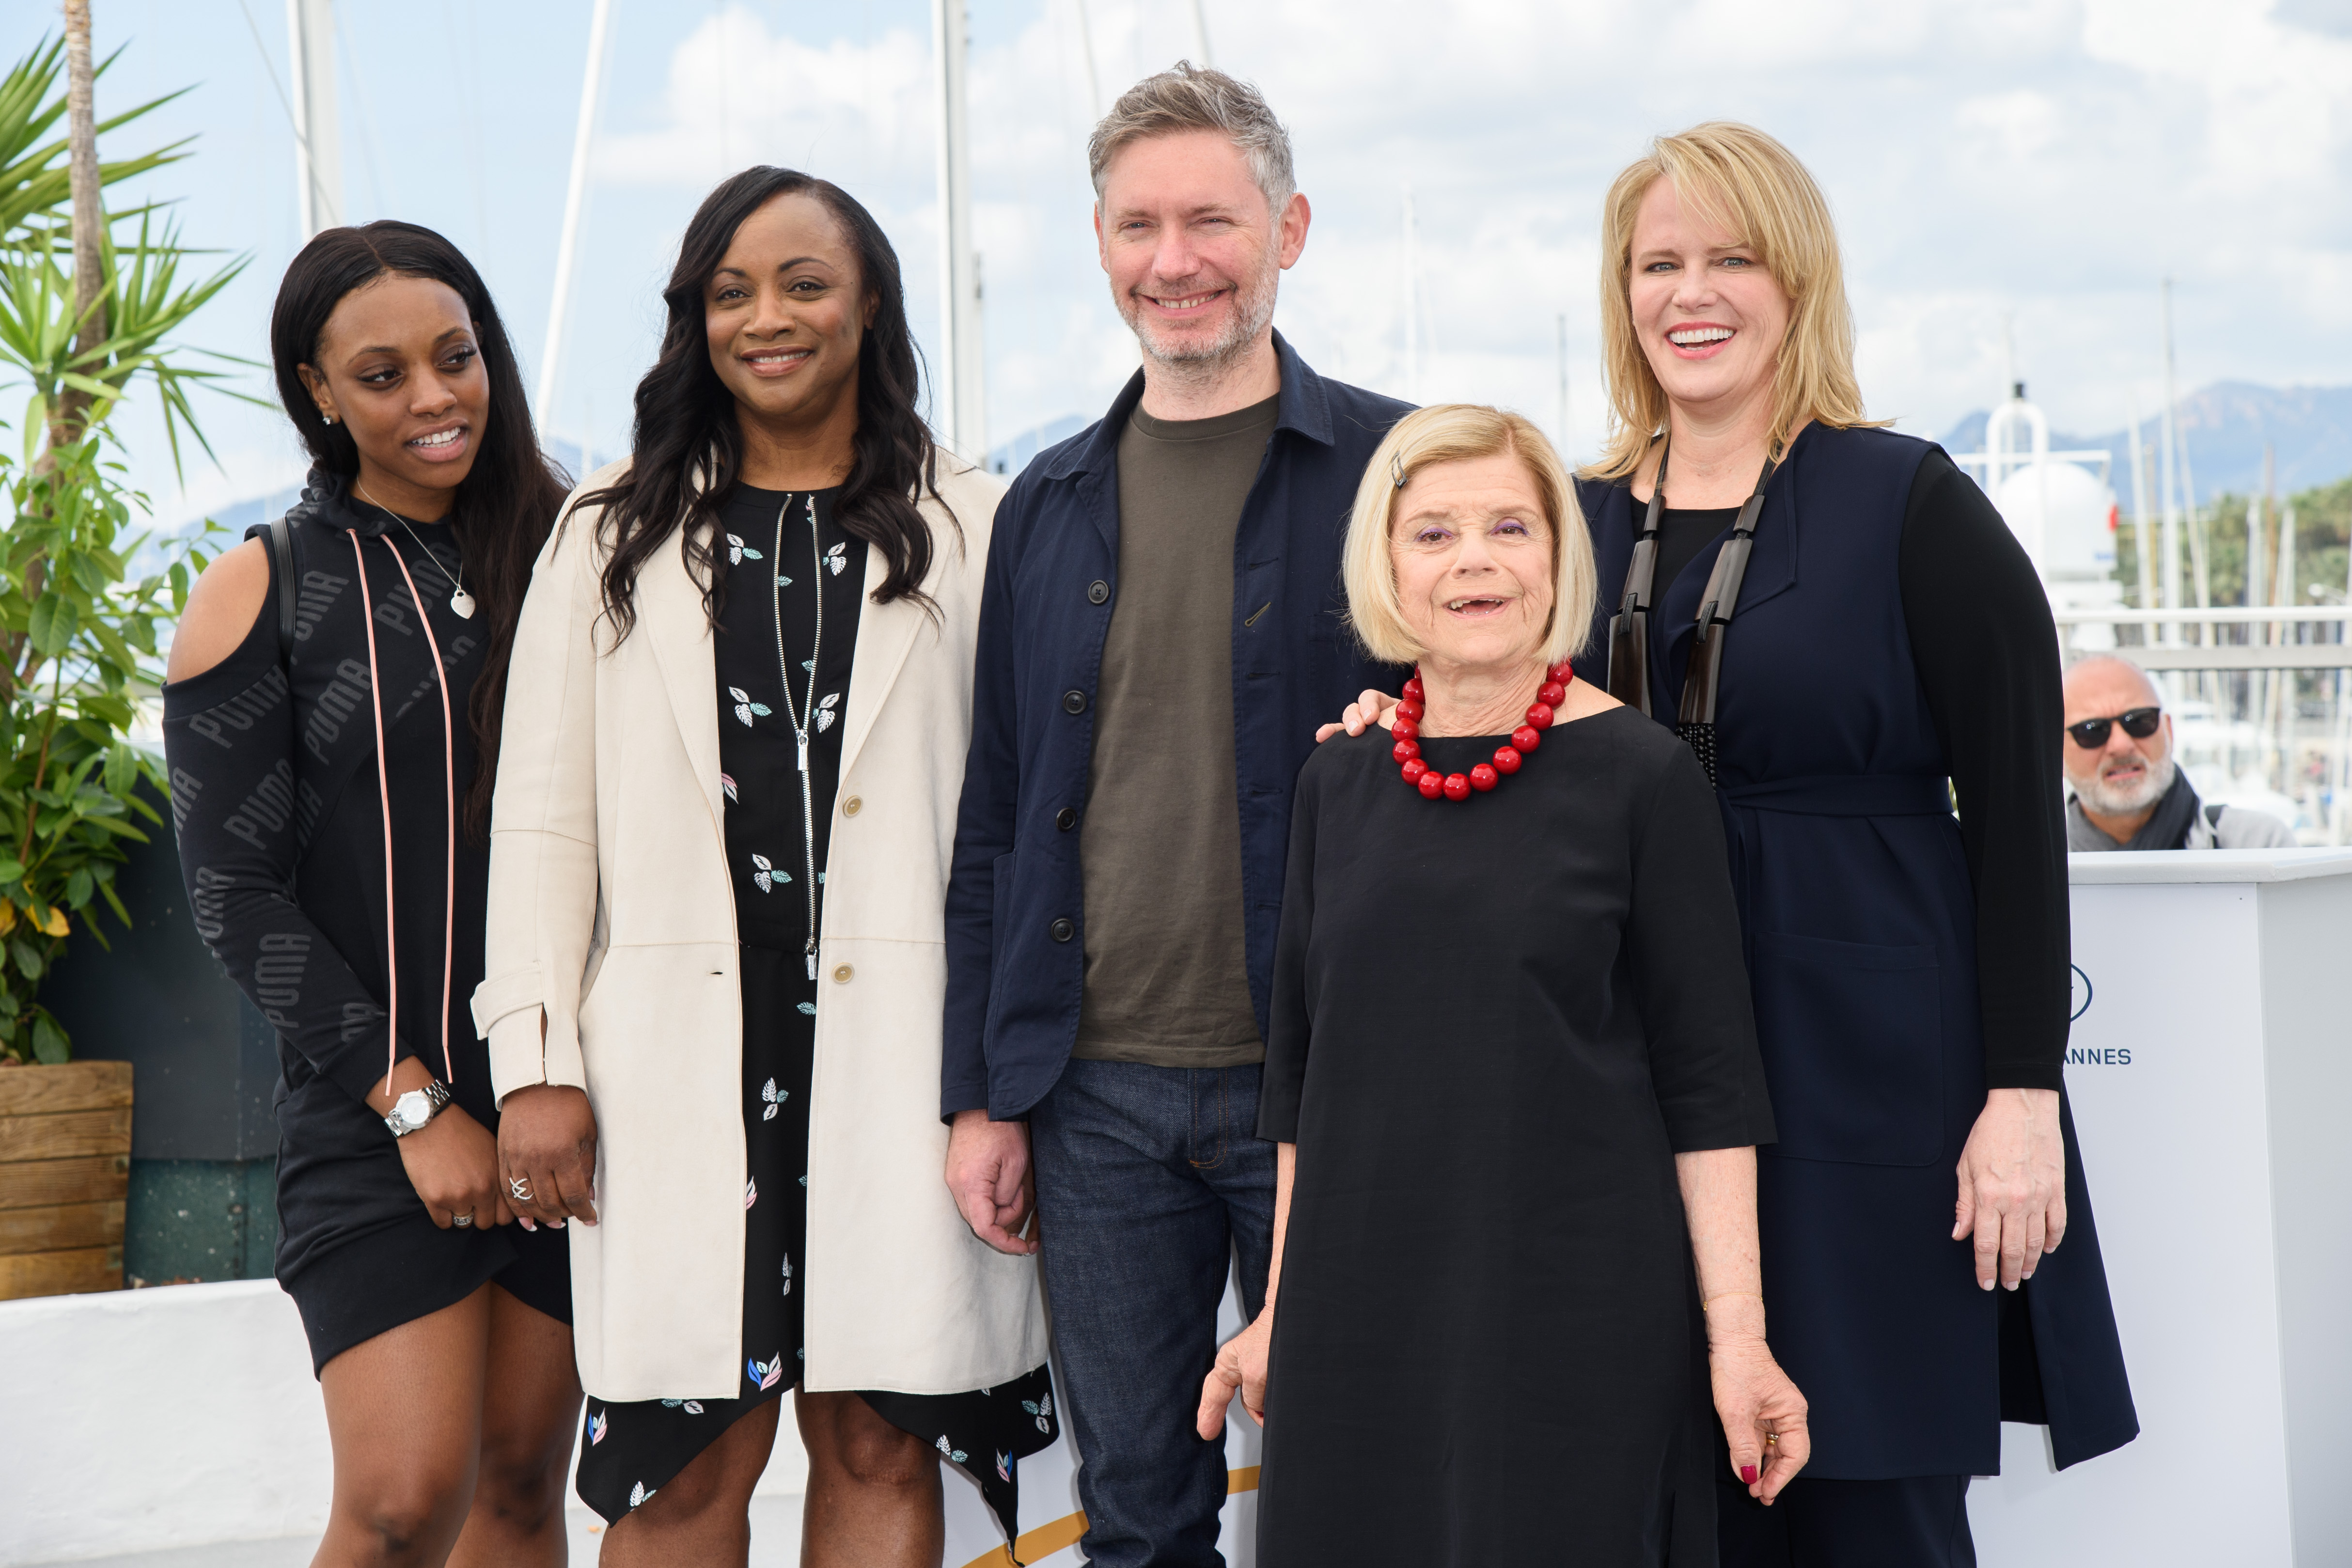 Rayah Houston, Pat Houston, Kevin Macdonald, Nicole David and Lisa ErspamerWhitney Workshop Photocall during the 71st Cannes Film Festival, France - 17 May 2018